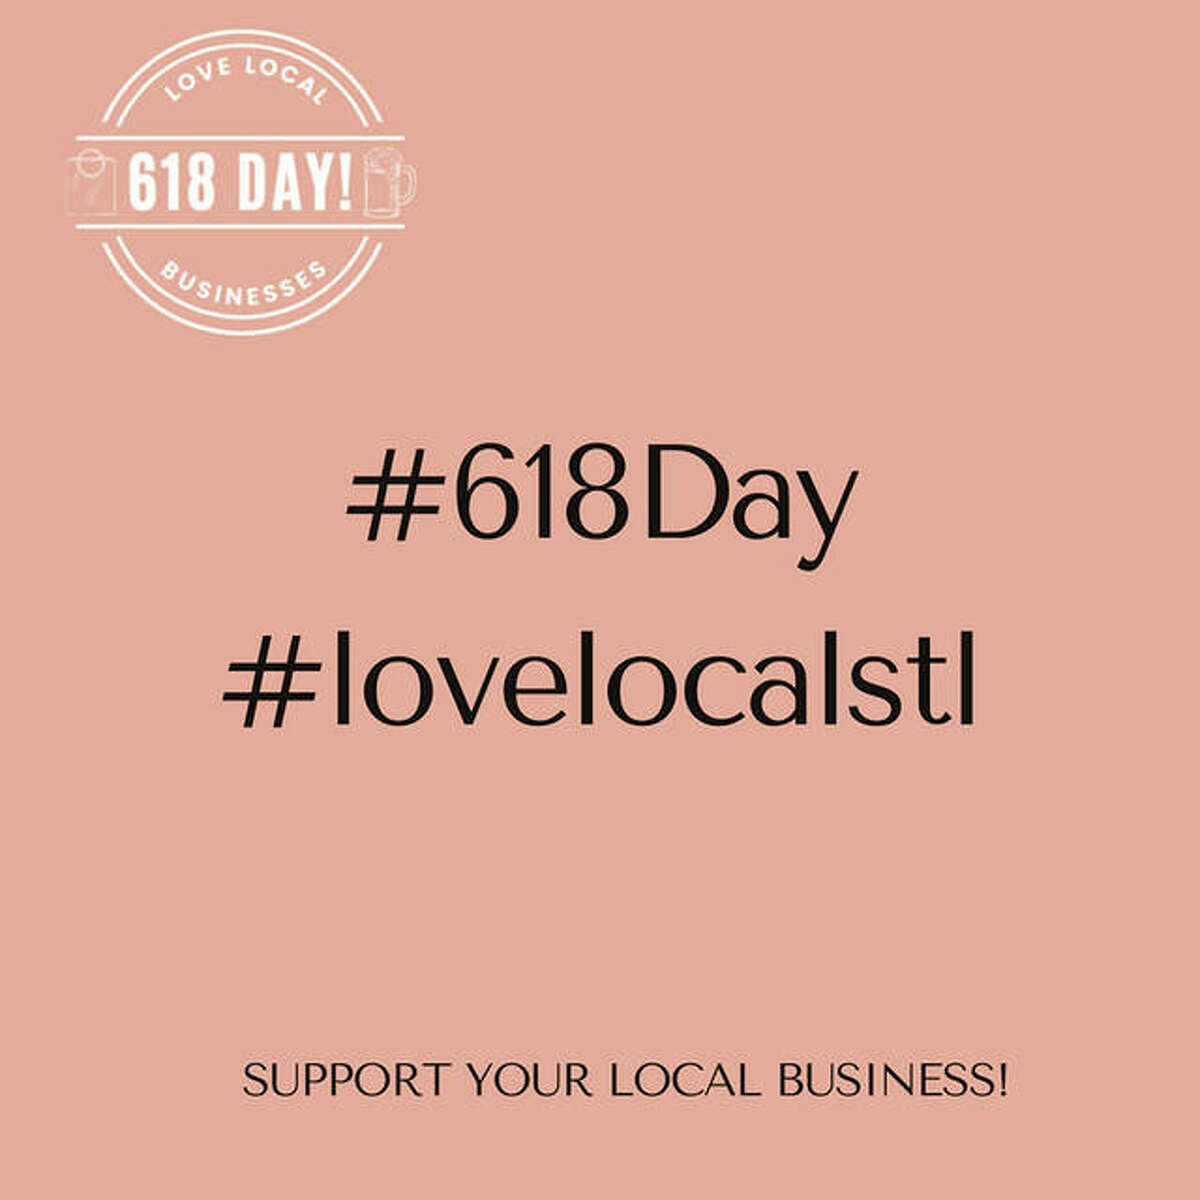 Love Local STL is presenting 618 Day on June 18-19 in downtown Edwardsville. The two-day event includes a pub crawl and a virtual 5K run on Friday and the 618 Day Festival on Saturday.